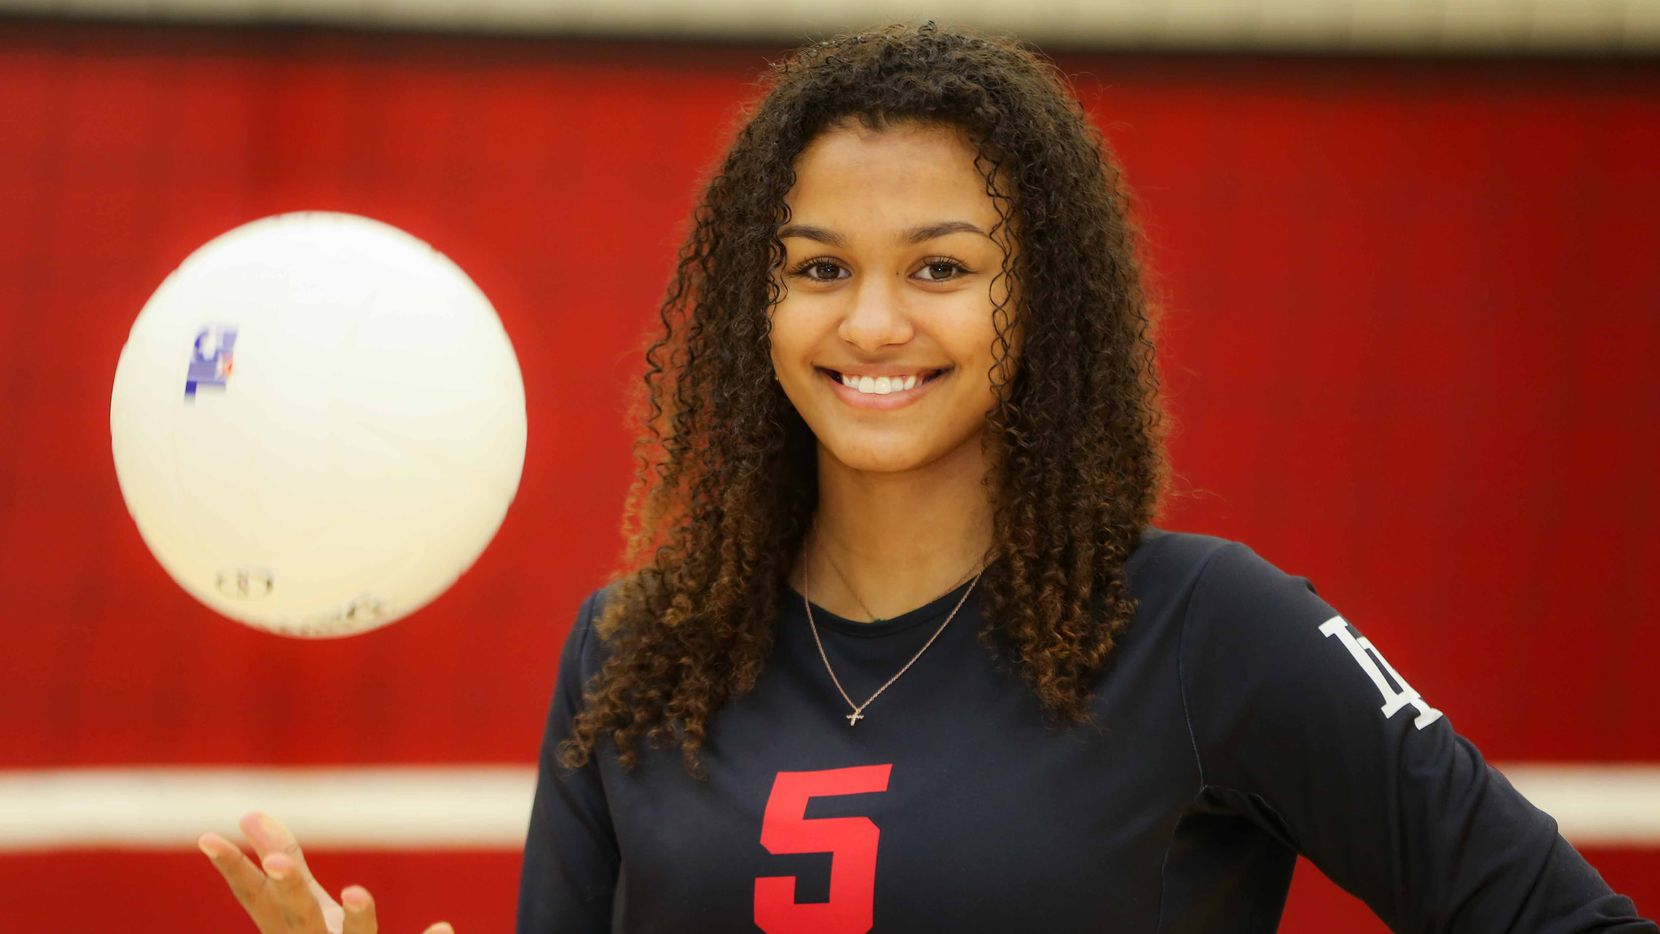 Lovejoy volleyball player Cecily Bramschreiber poses inside the LoveJoy Gym as the Player of the Year in Lucas on Tuesday, December 29, 2020. (Lola Gomez/The Dallas Morning News)